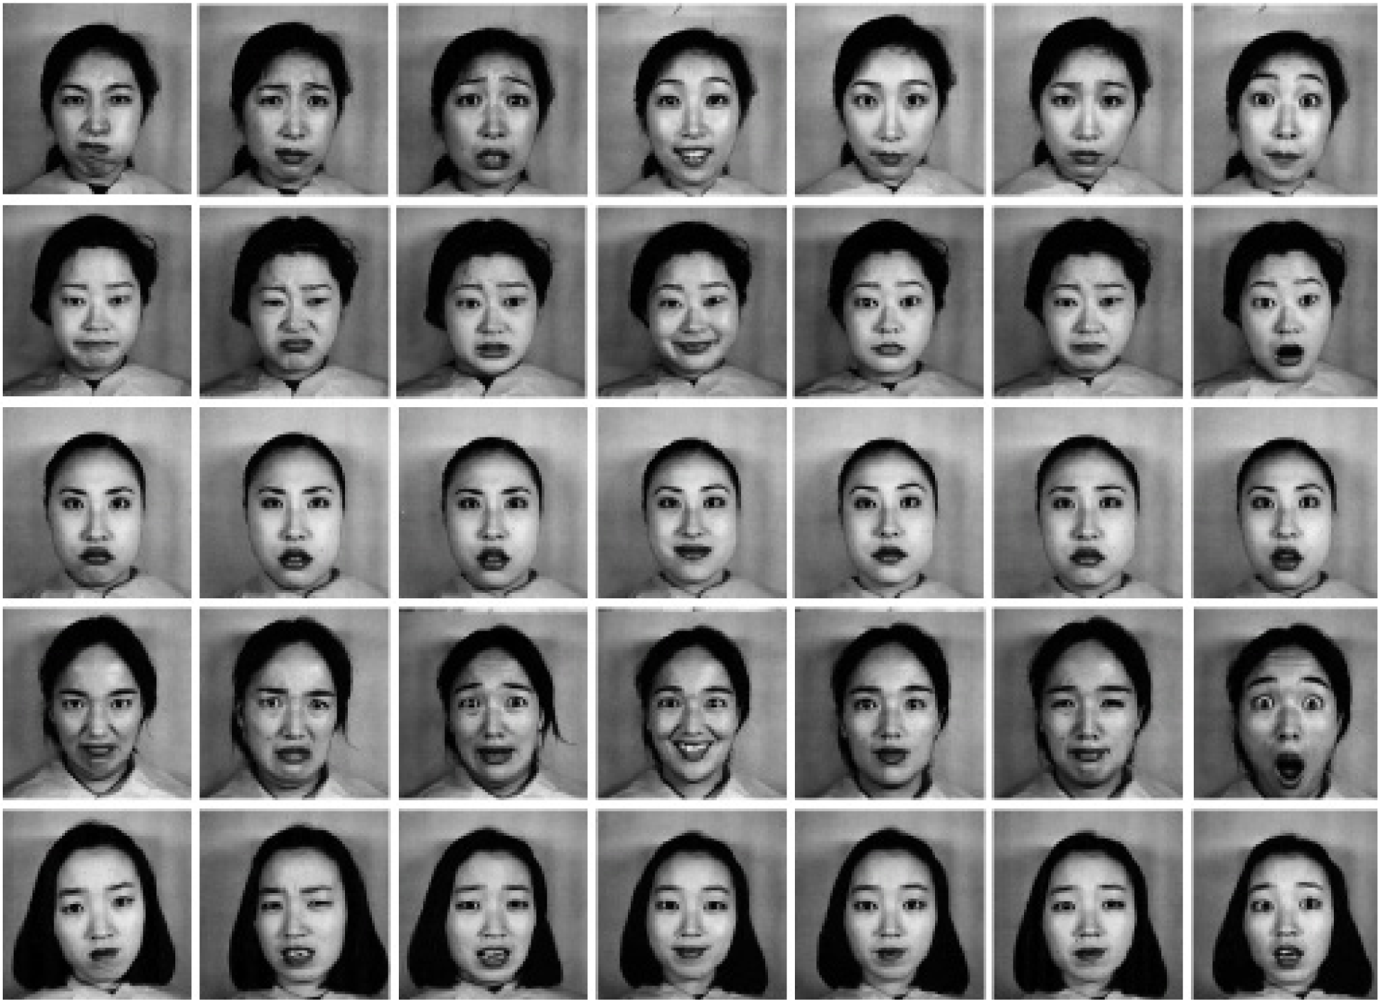 Recognition Of Facial Expressions 116